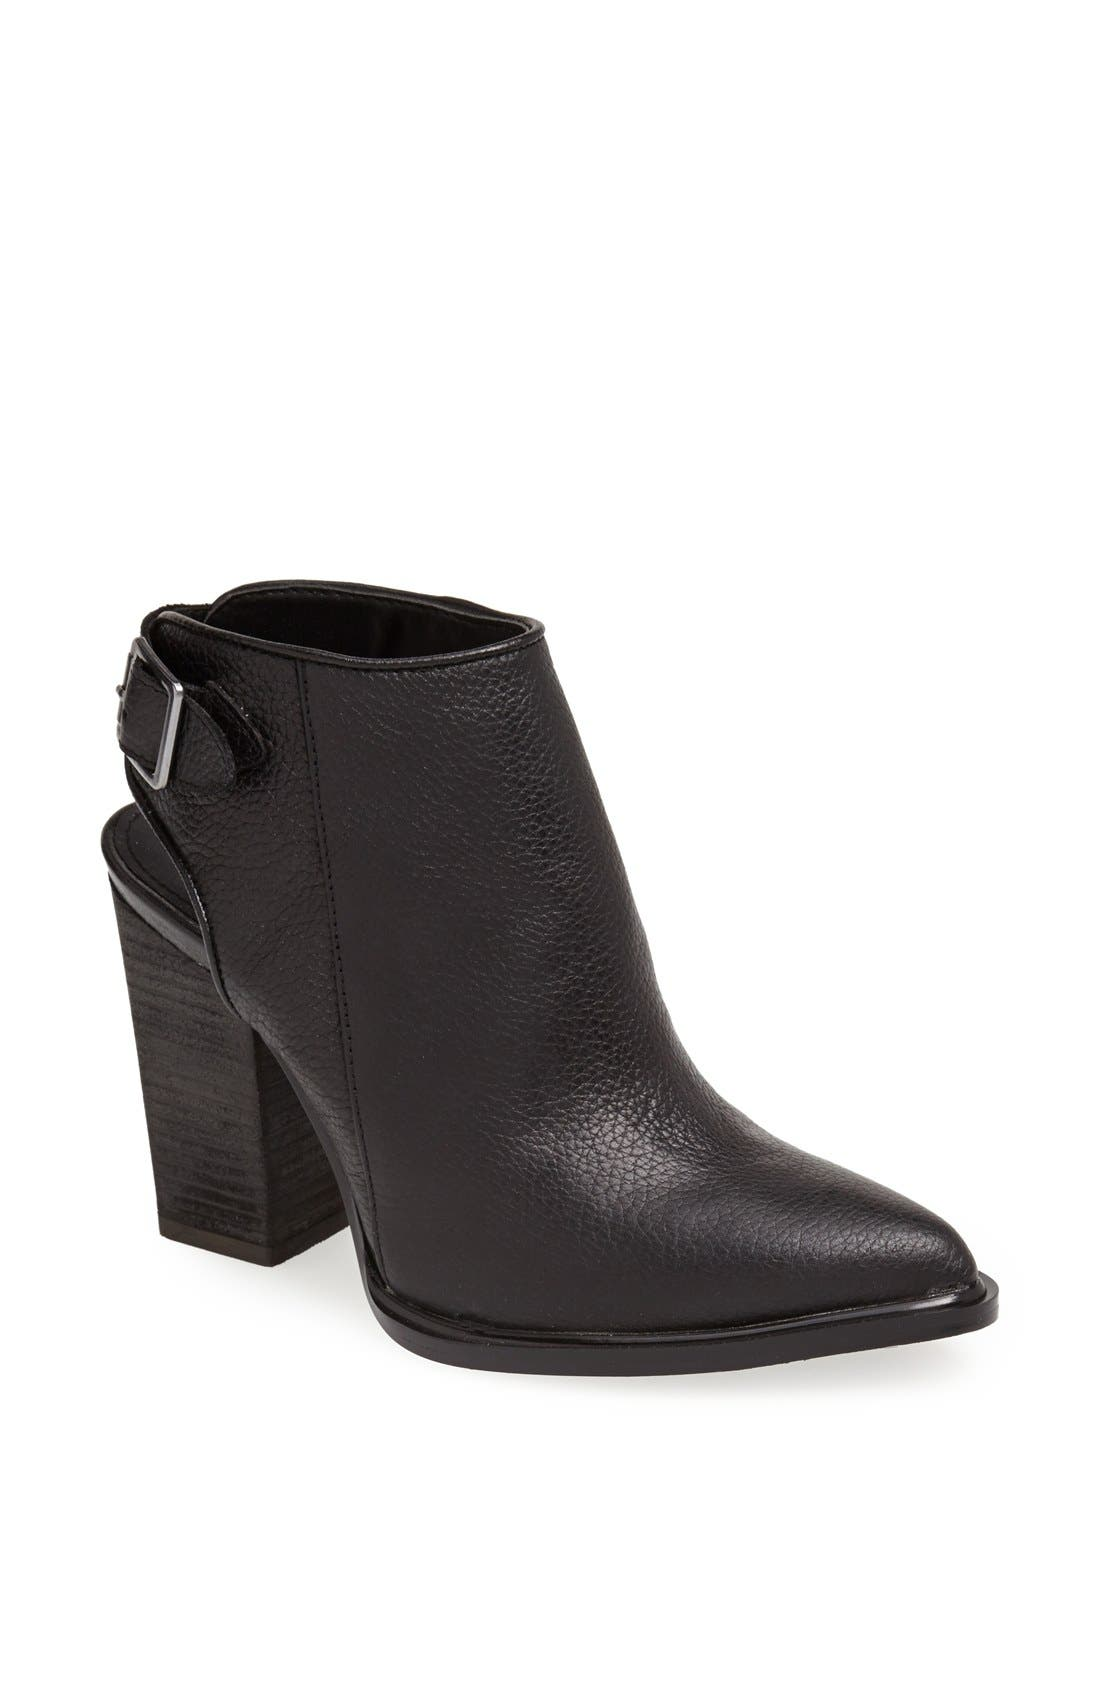 Alternate Image 1 Selected - Steve Madden 'Mallia' Bootie